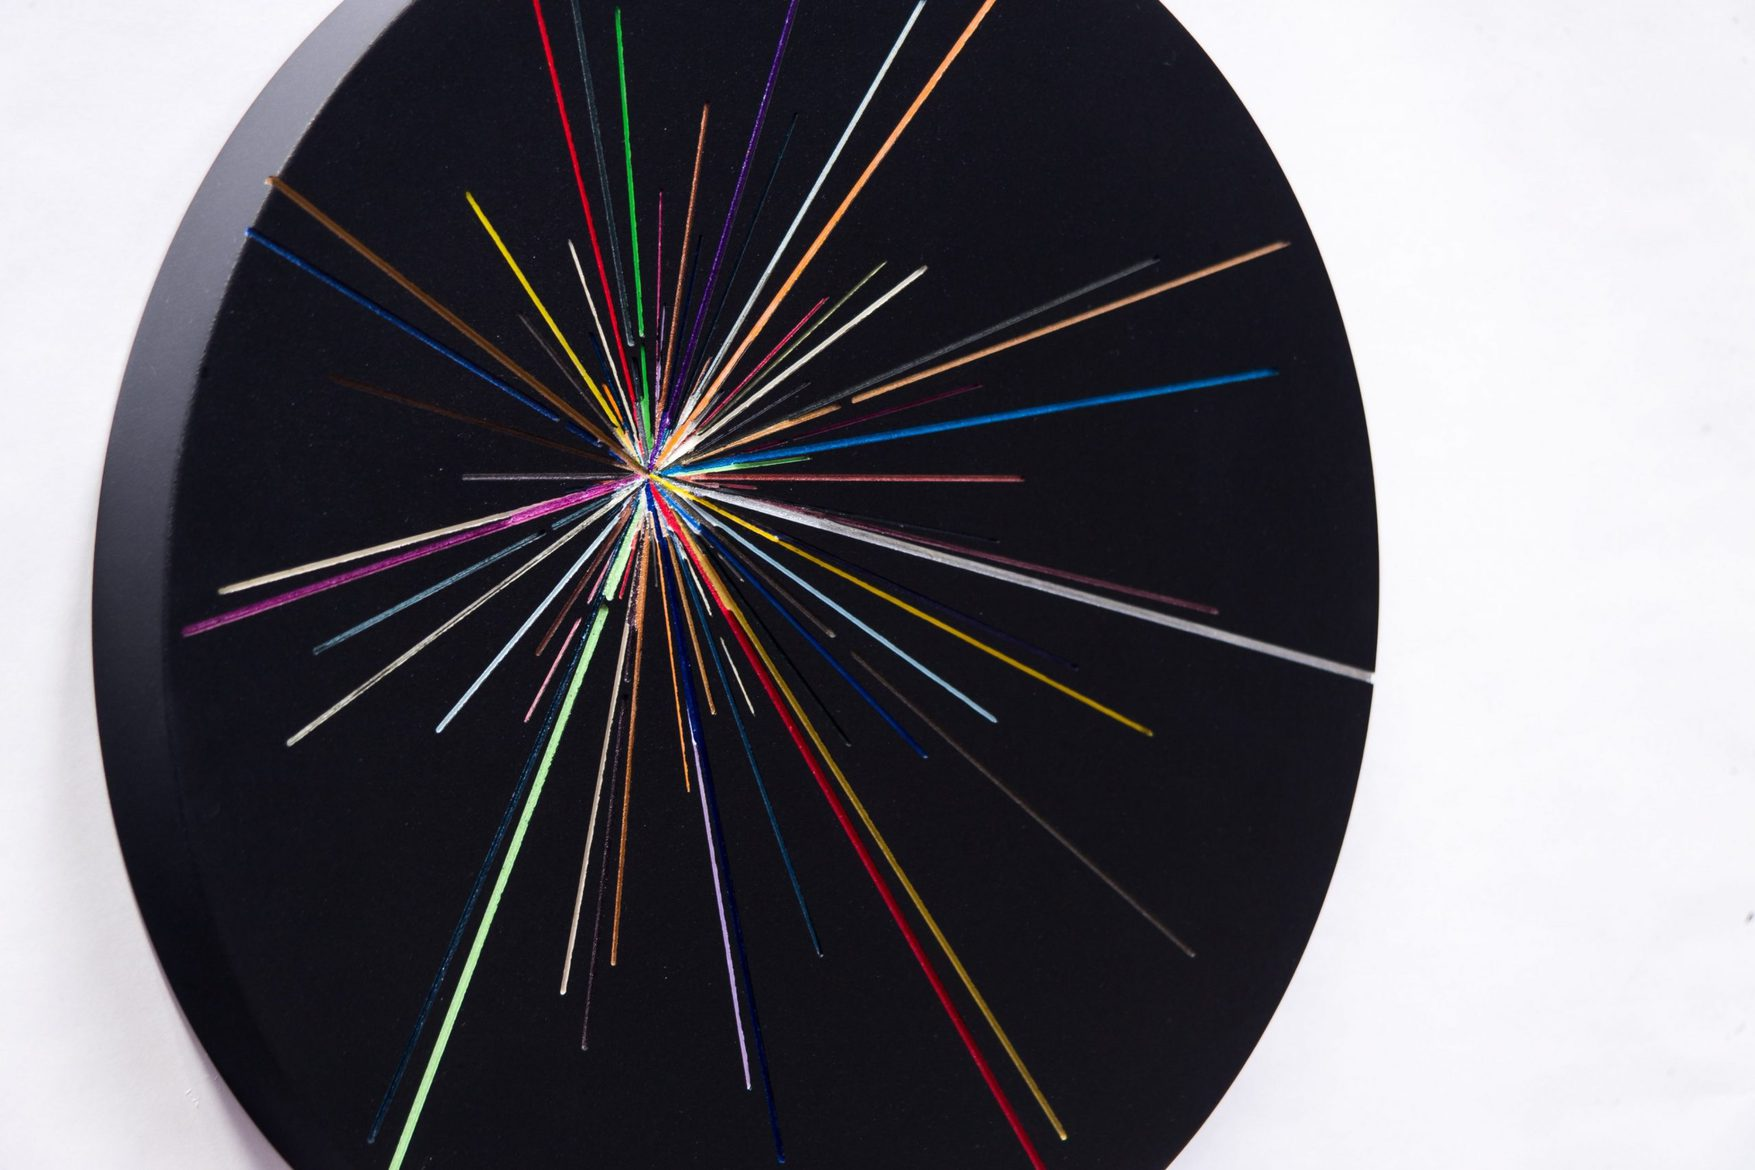 Kevin Osmond, 'Outer Space Series #1' (detail), 2015, (Freehand Routed) MDF, acrylic metallic paints, UV clear lacquer, Aluminium fixings, 36.5cm dia, wall-mounted disc x 3.5cm(d)